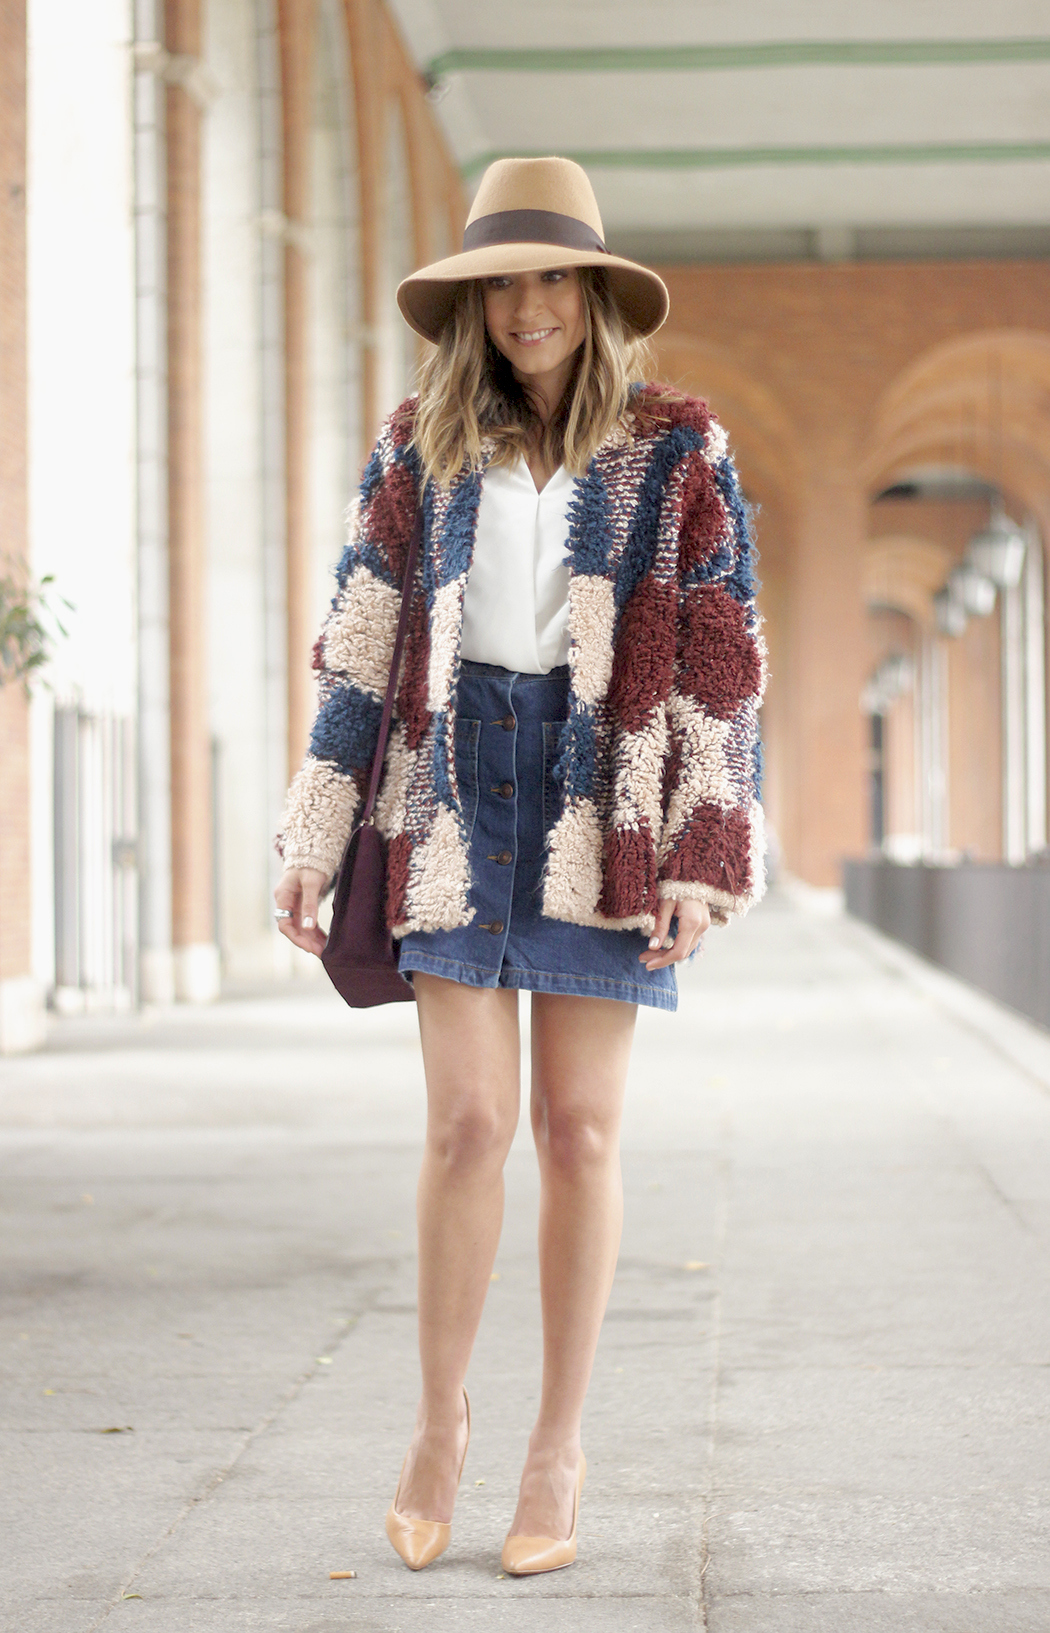 Cardigan Denim Skirt Camel Hat Burgundy Bag outfit06